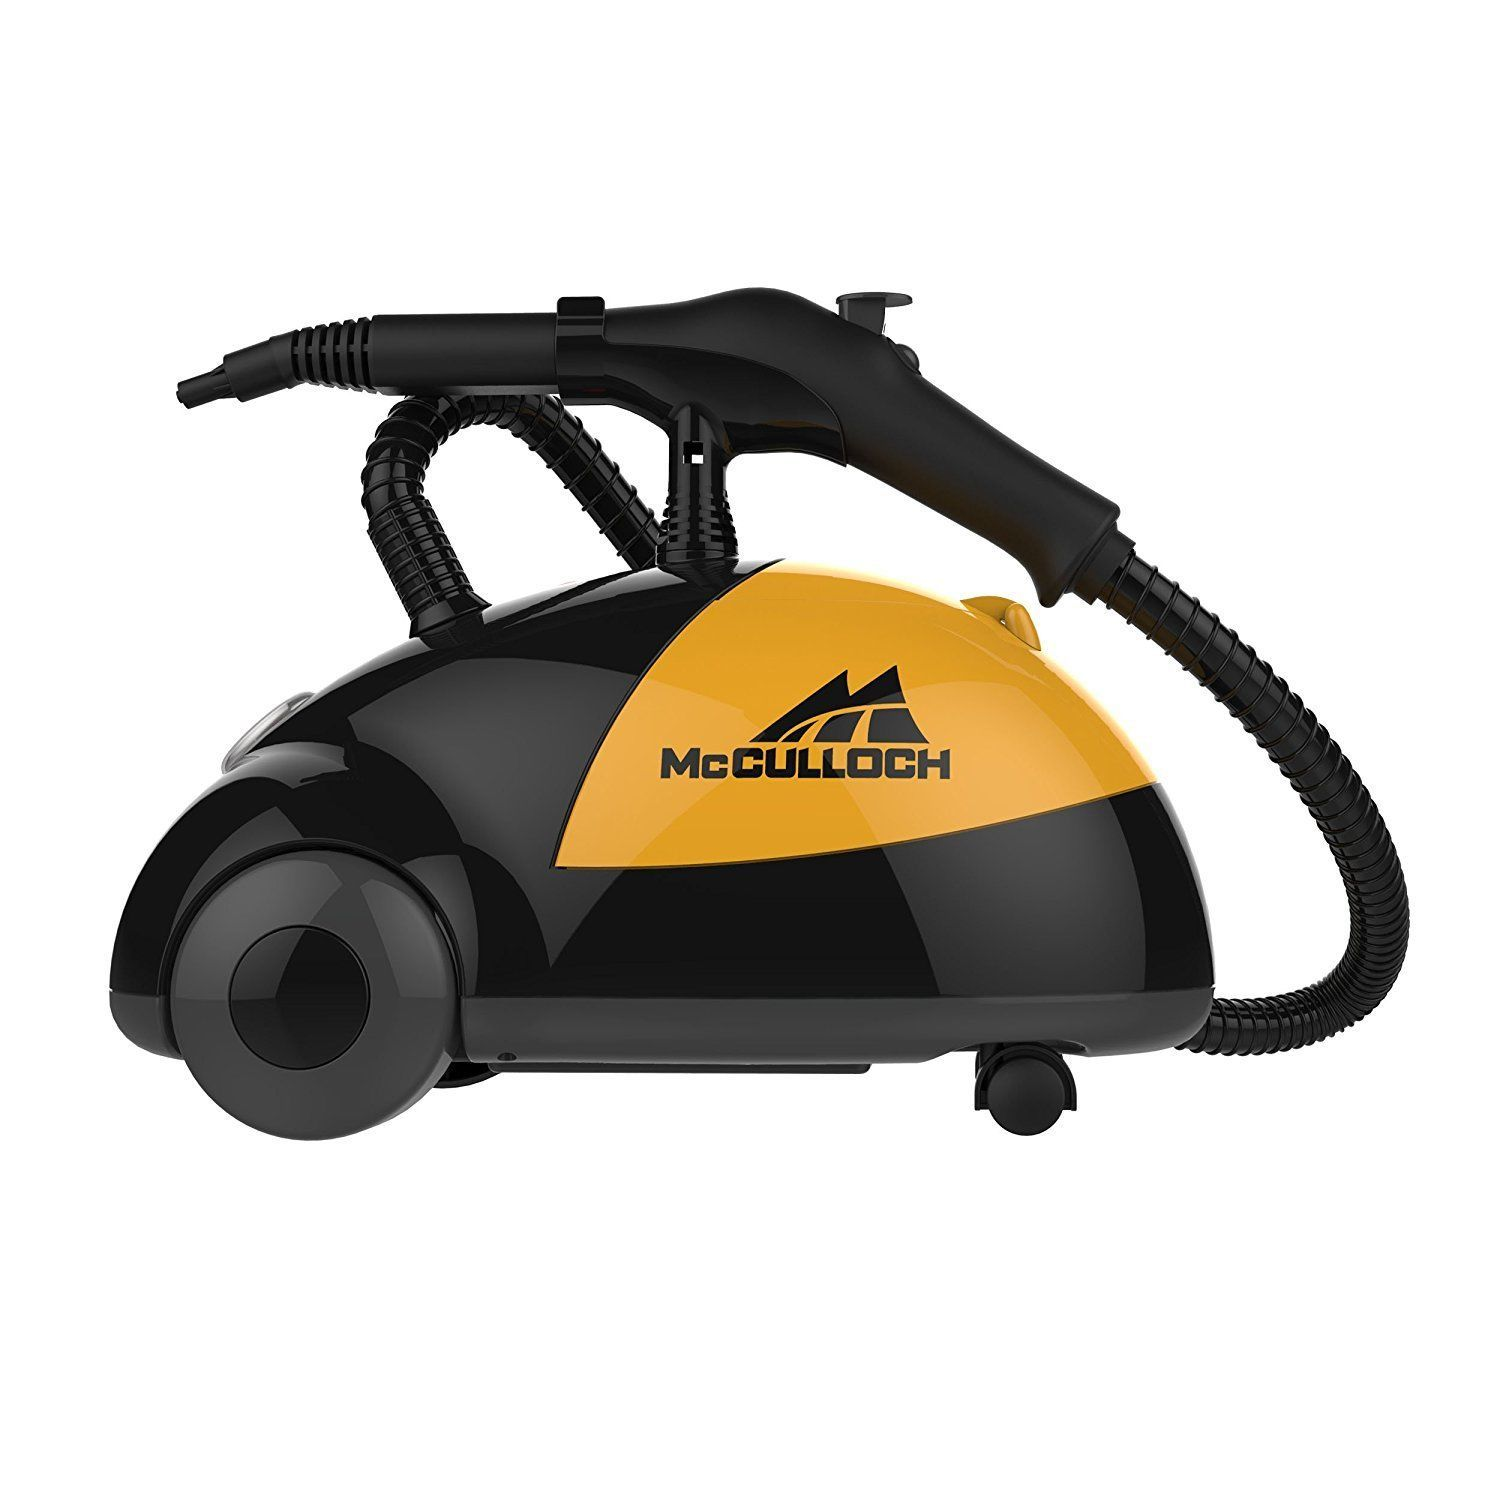 Carpet Steamers 79656 Steam Heavy Duty Cleaner Carpet Floor Portable Cleaning Steamer Canister System Buy It Now Only 199 95 On E Steam Cleaners